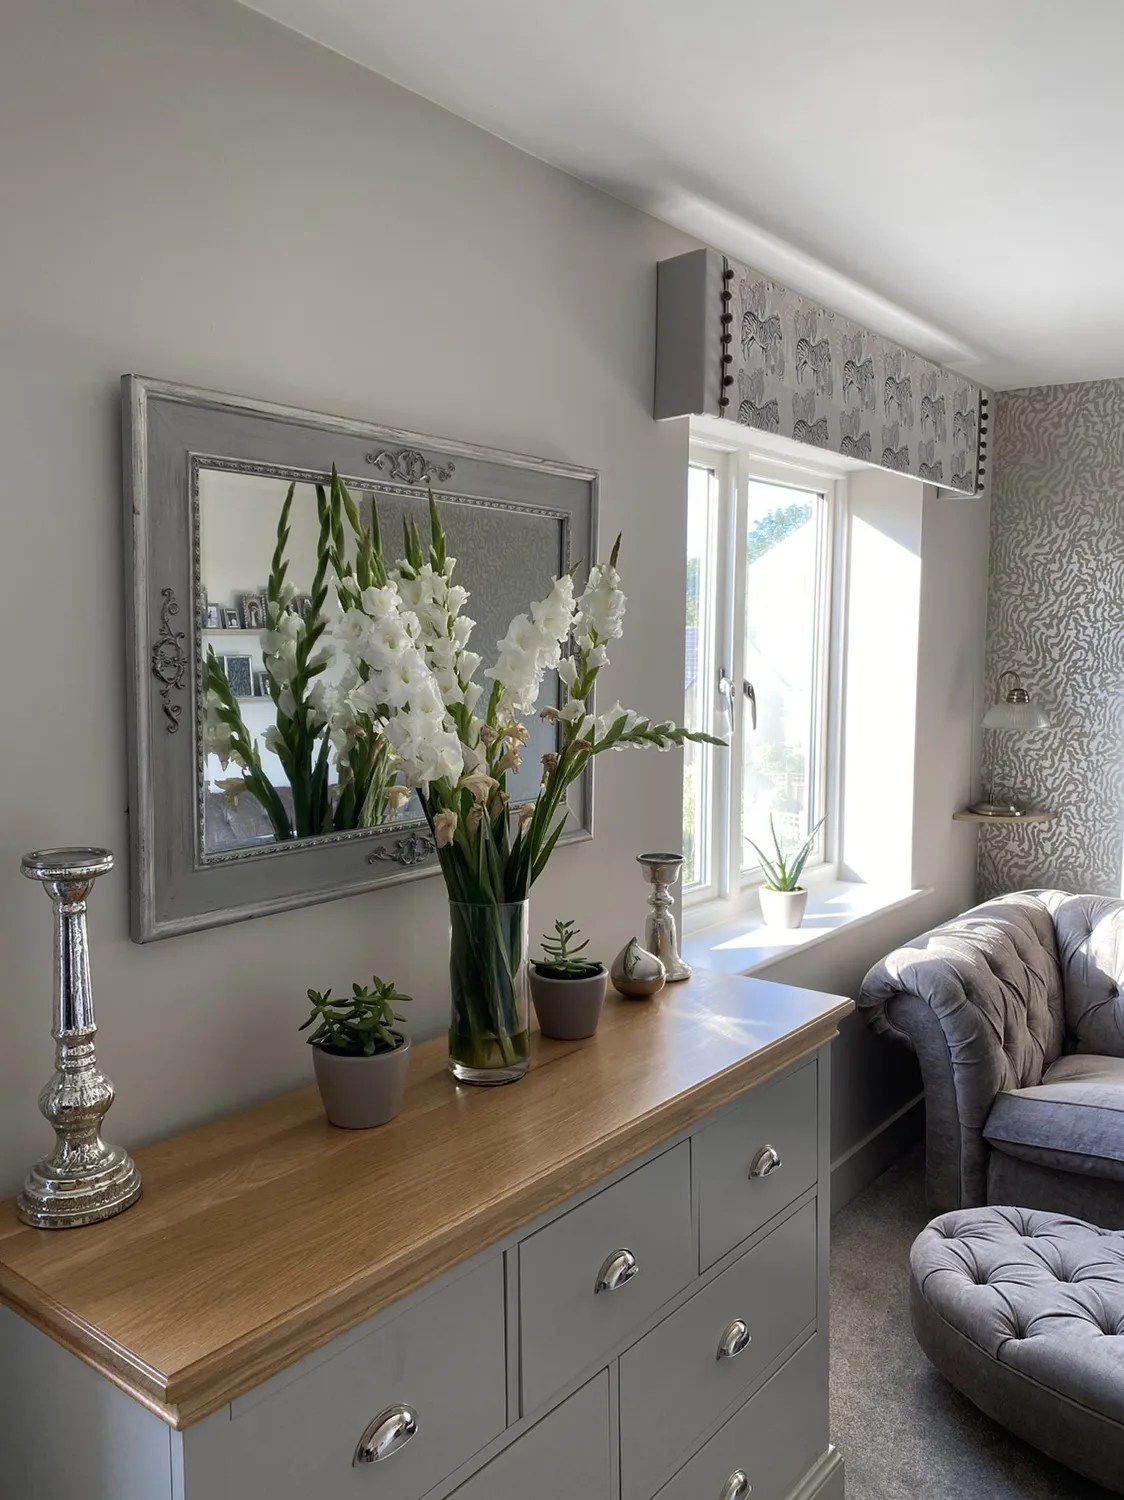 living room makeover. Is farrow and ball paint worth it